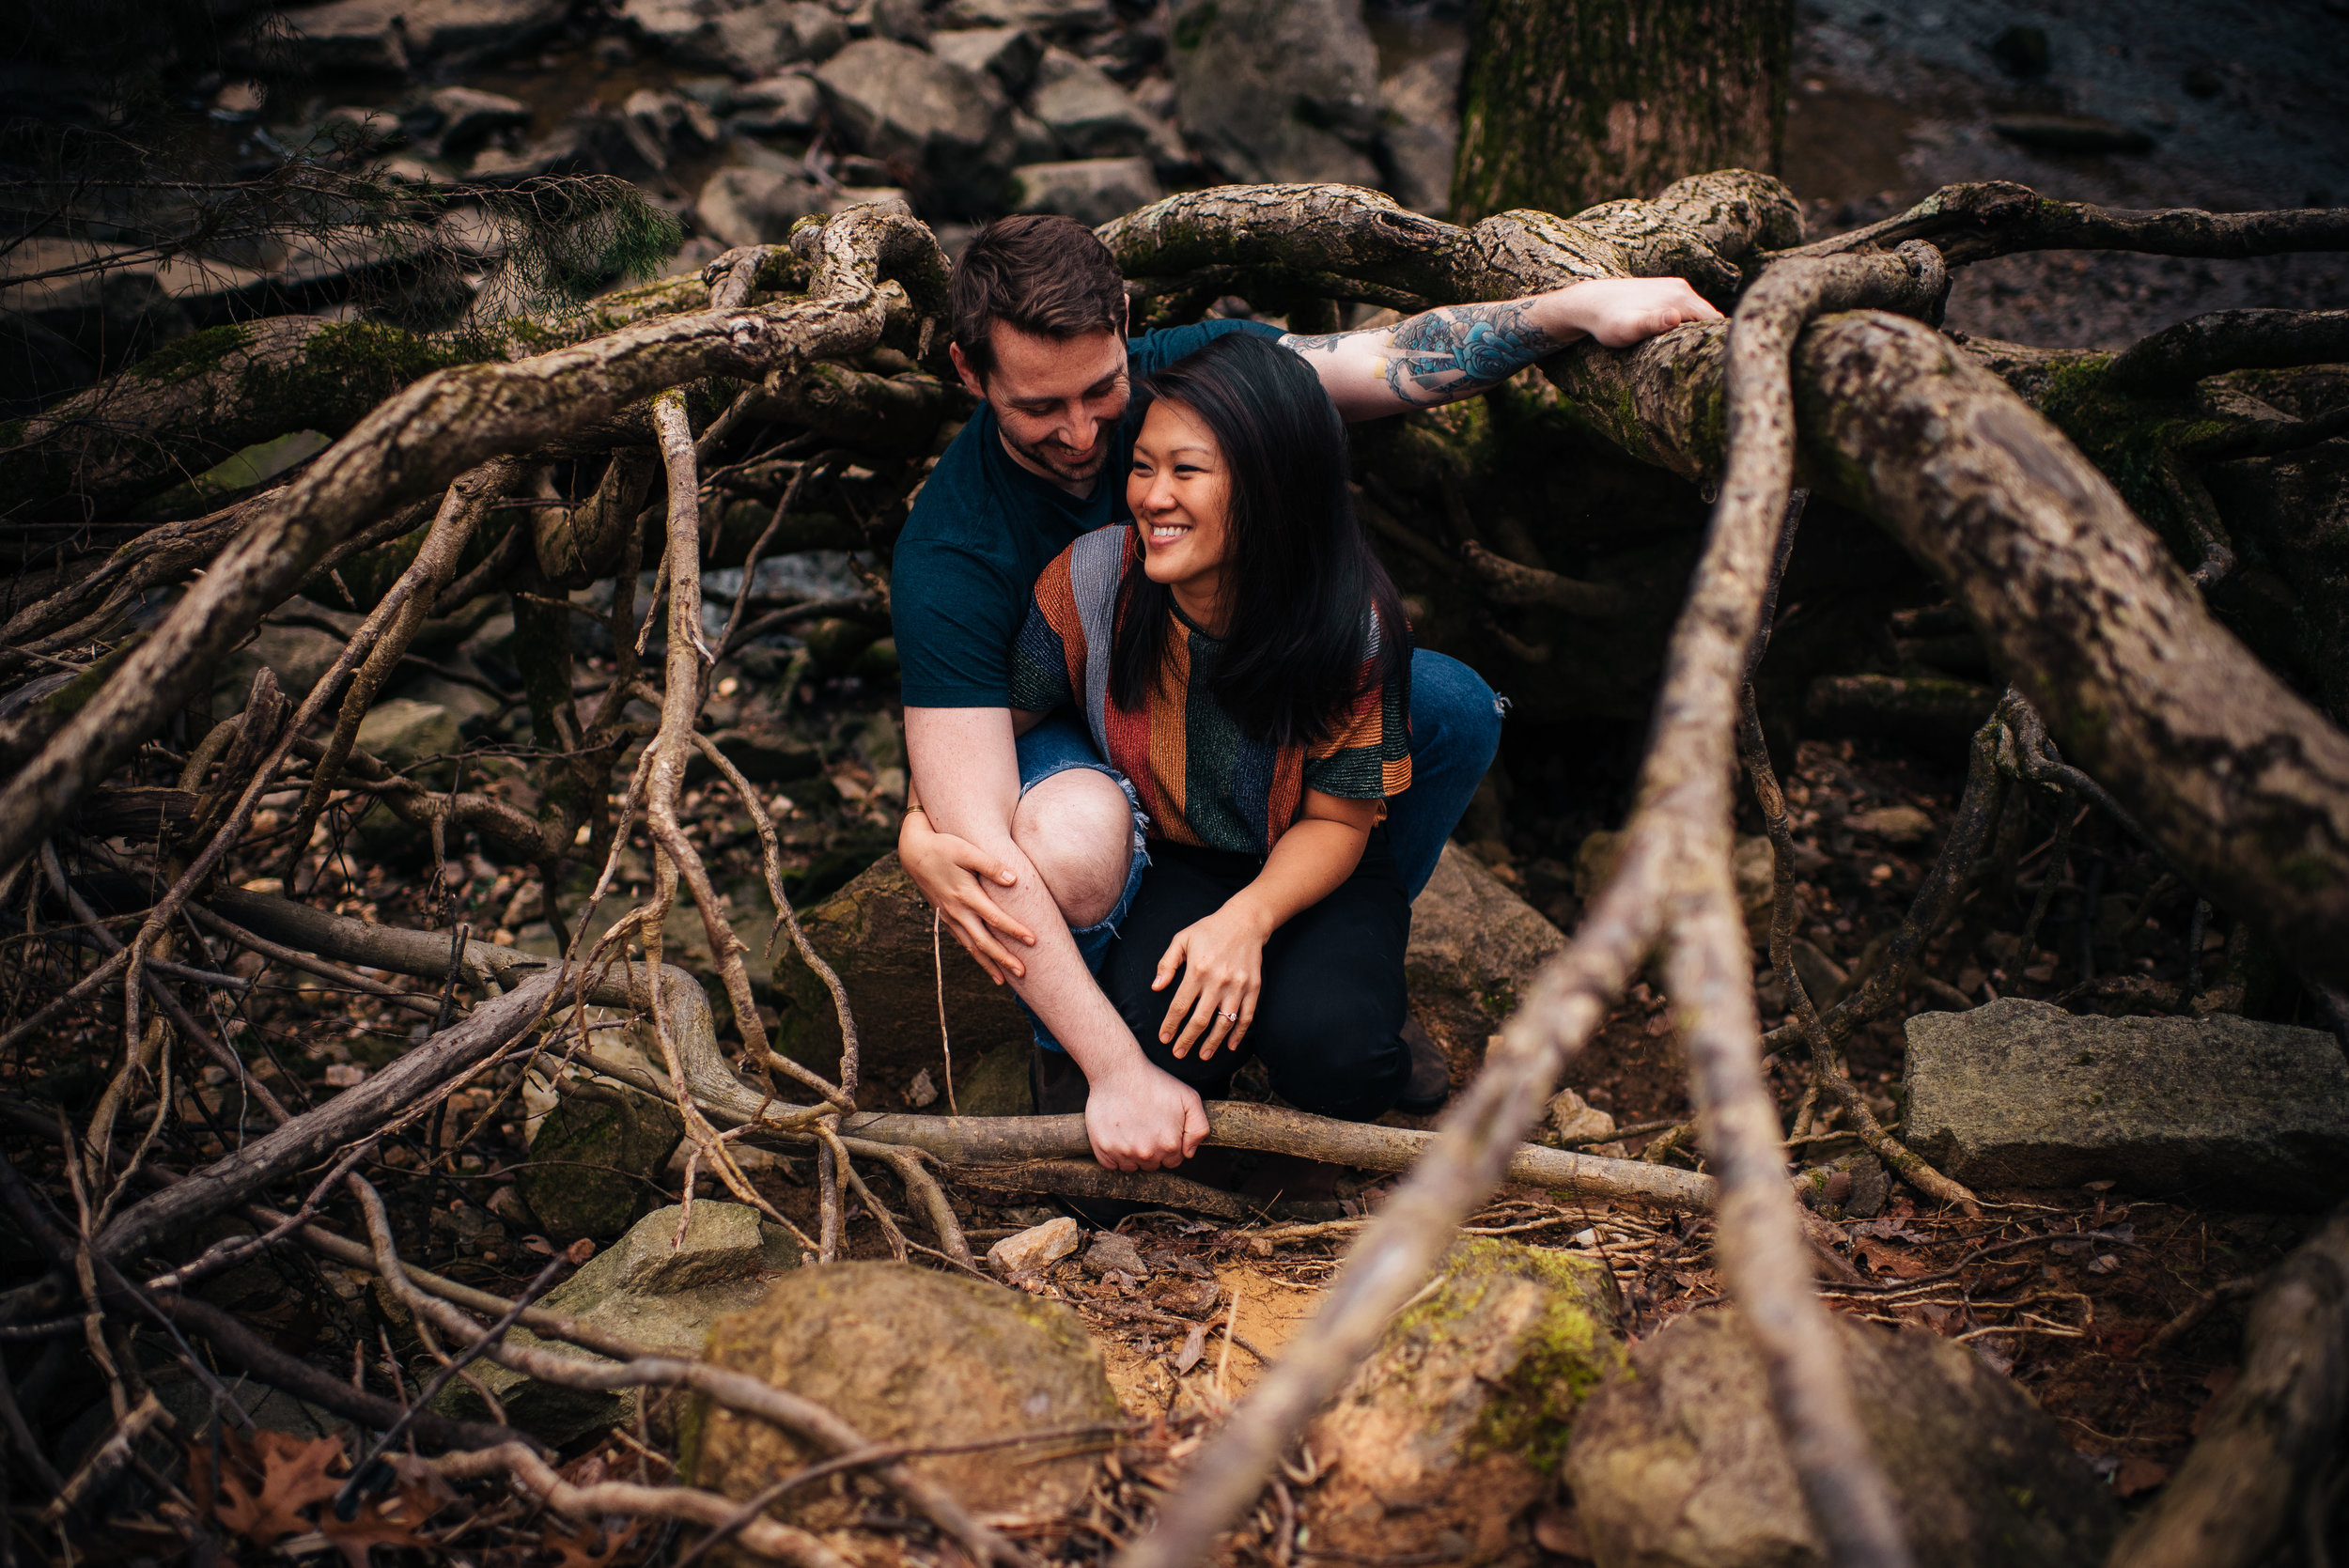 Raleigh Wedding Photographer - Umstead Park Engagement - North Carolina Wedding Photographer - Raleigh Engagement